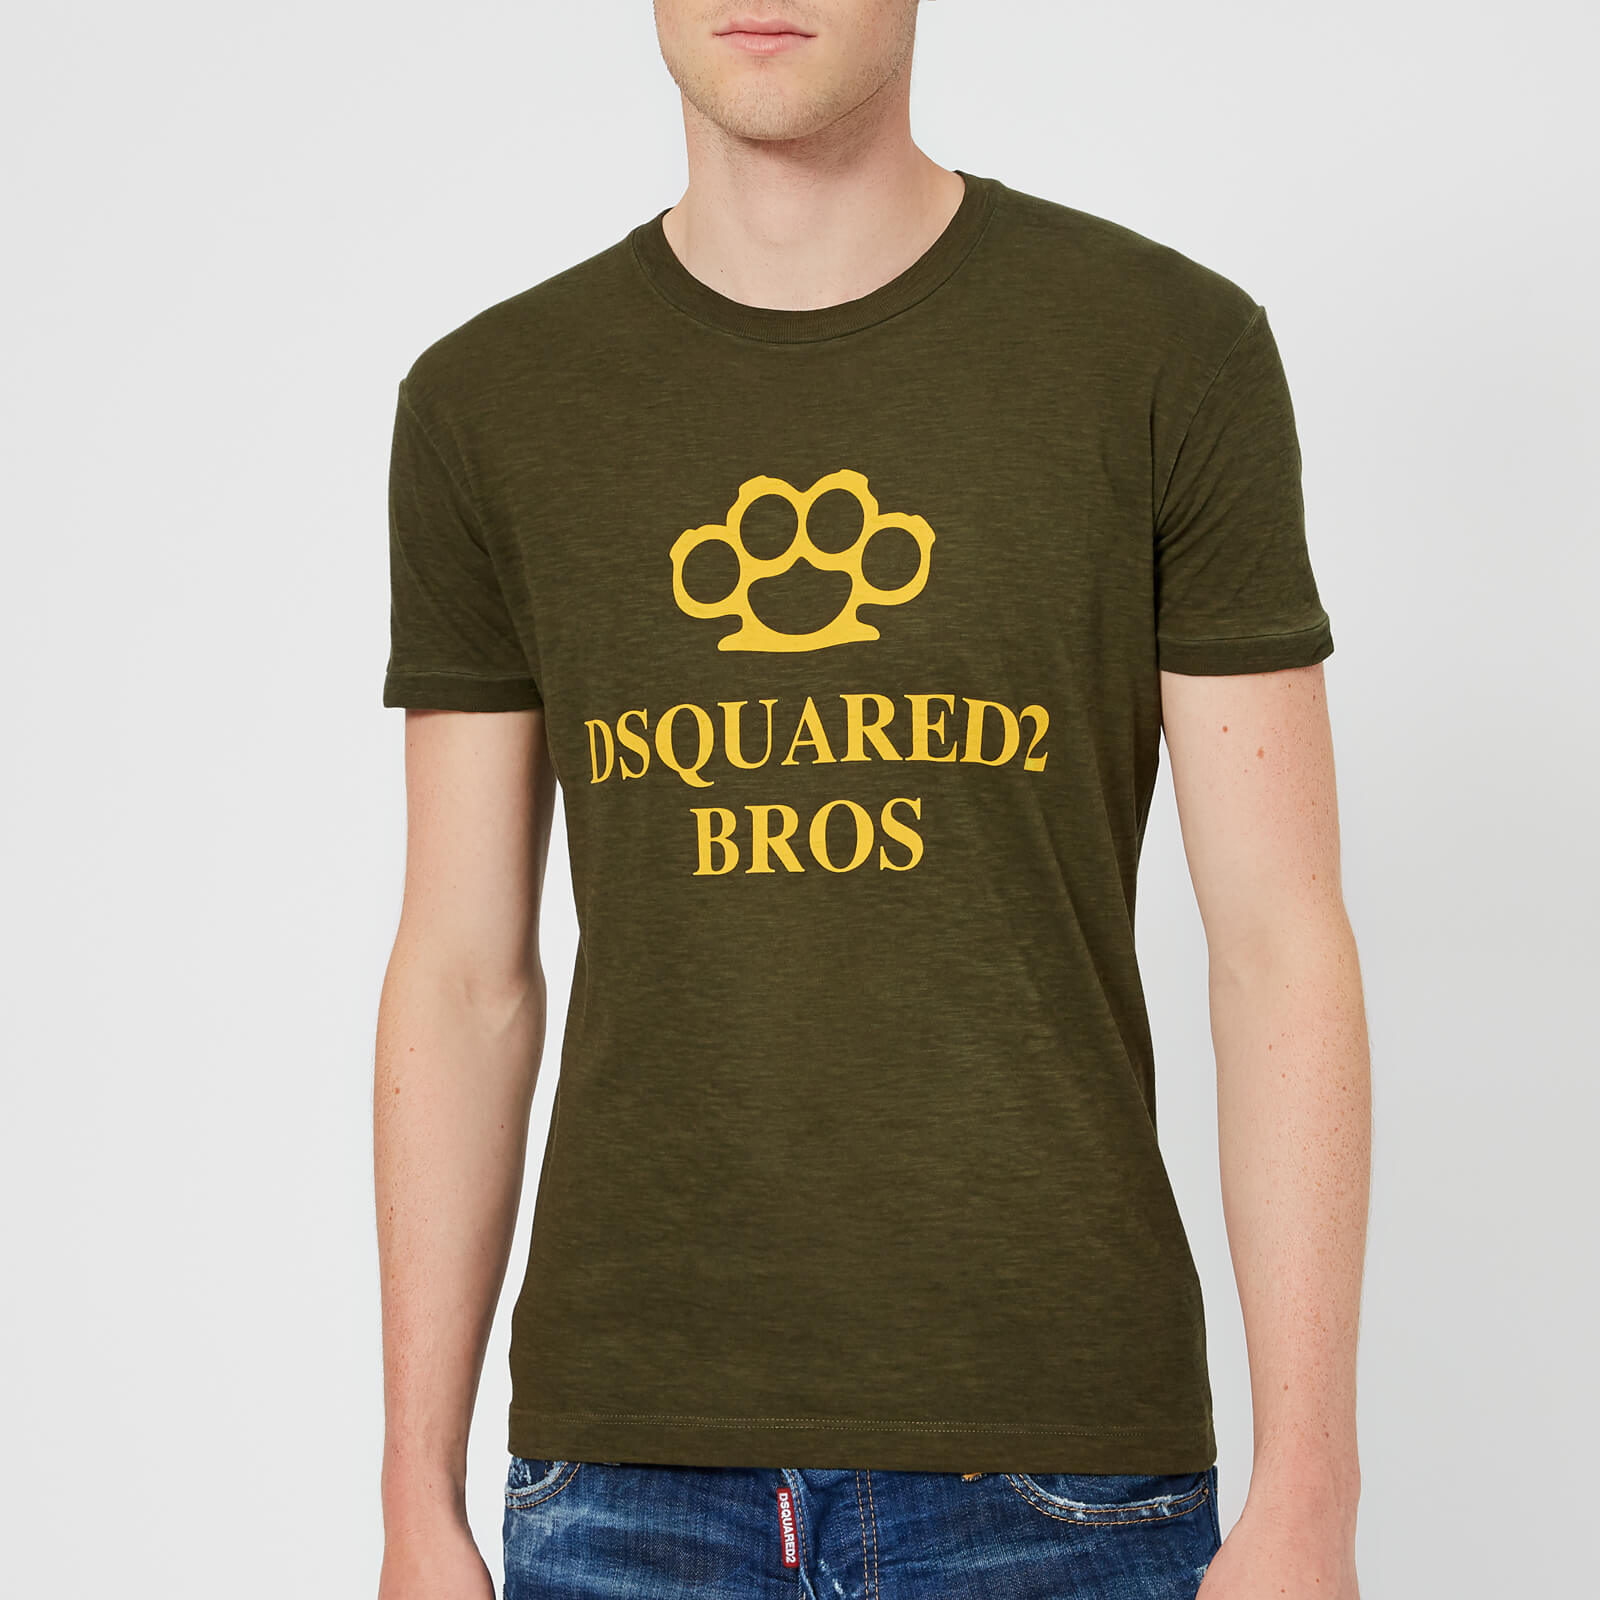 8e4214f0 Dsquared2 Men's Super Vintage Dyed Knuckle T-Shirt - Military Green - Free  UK Delivery over £50